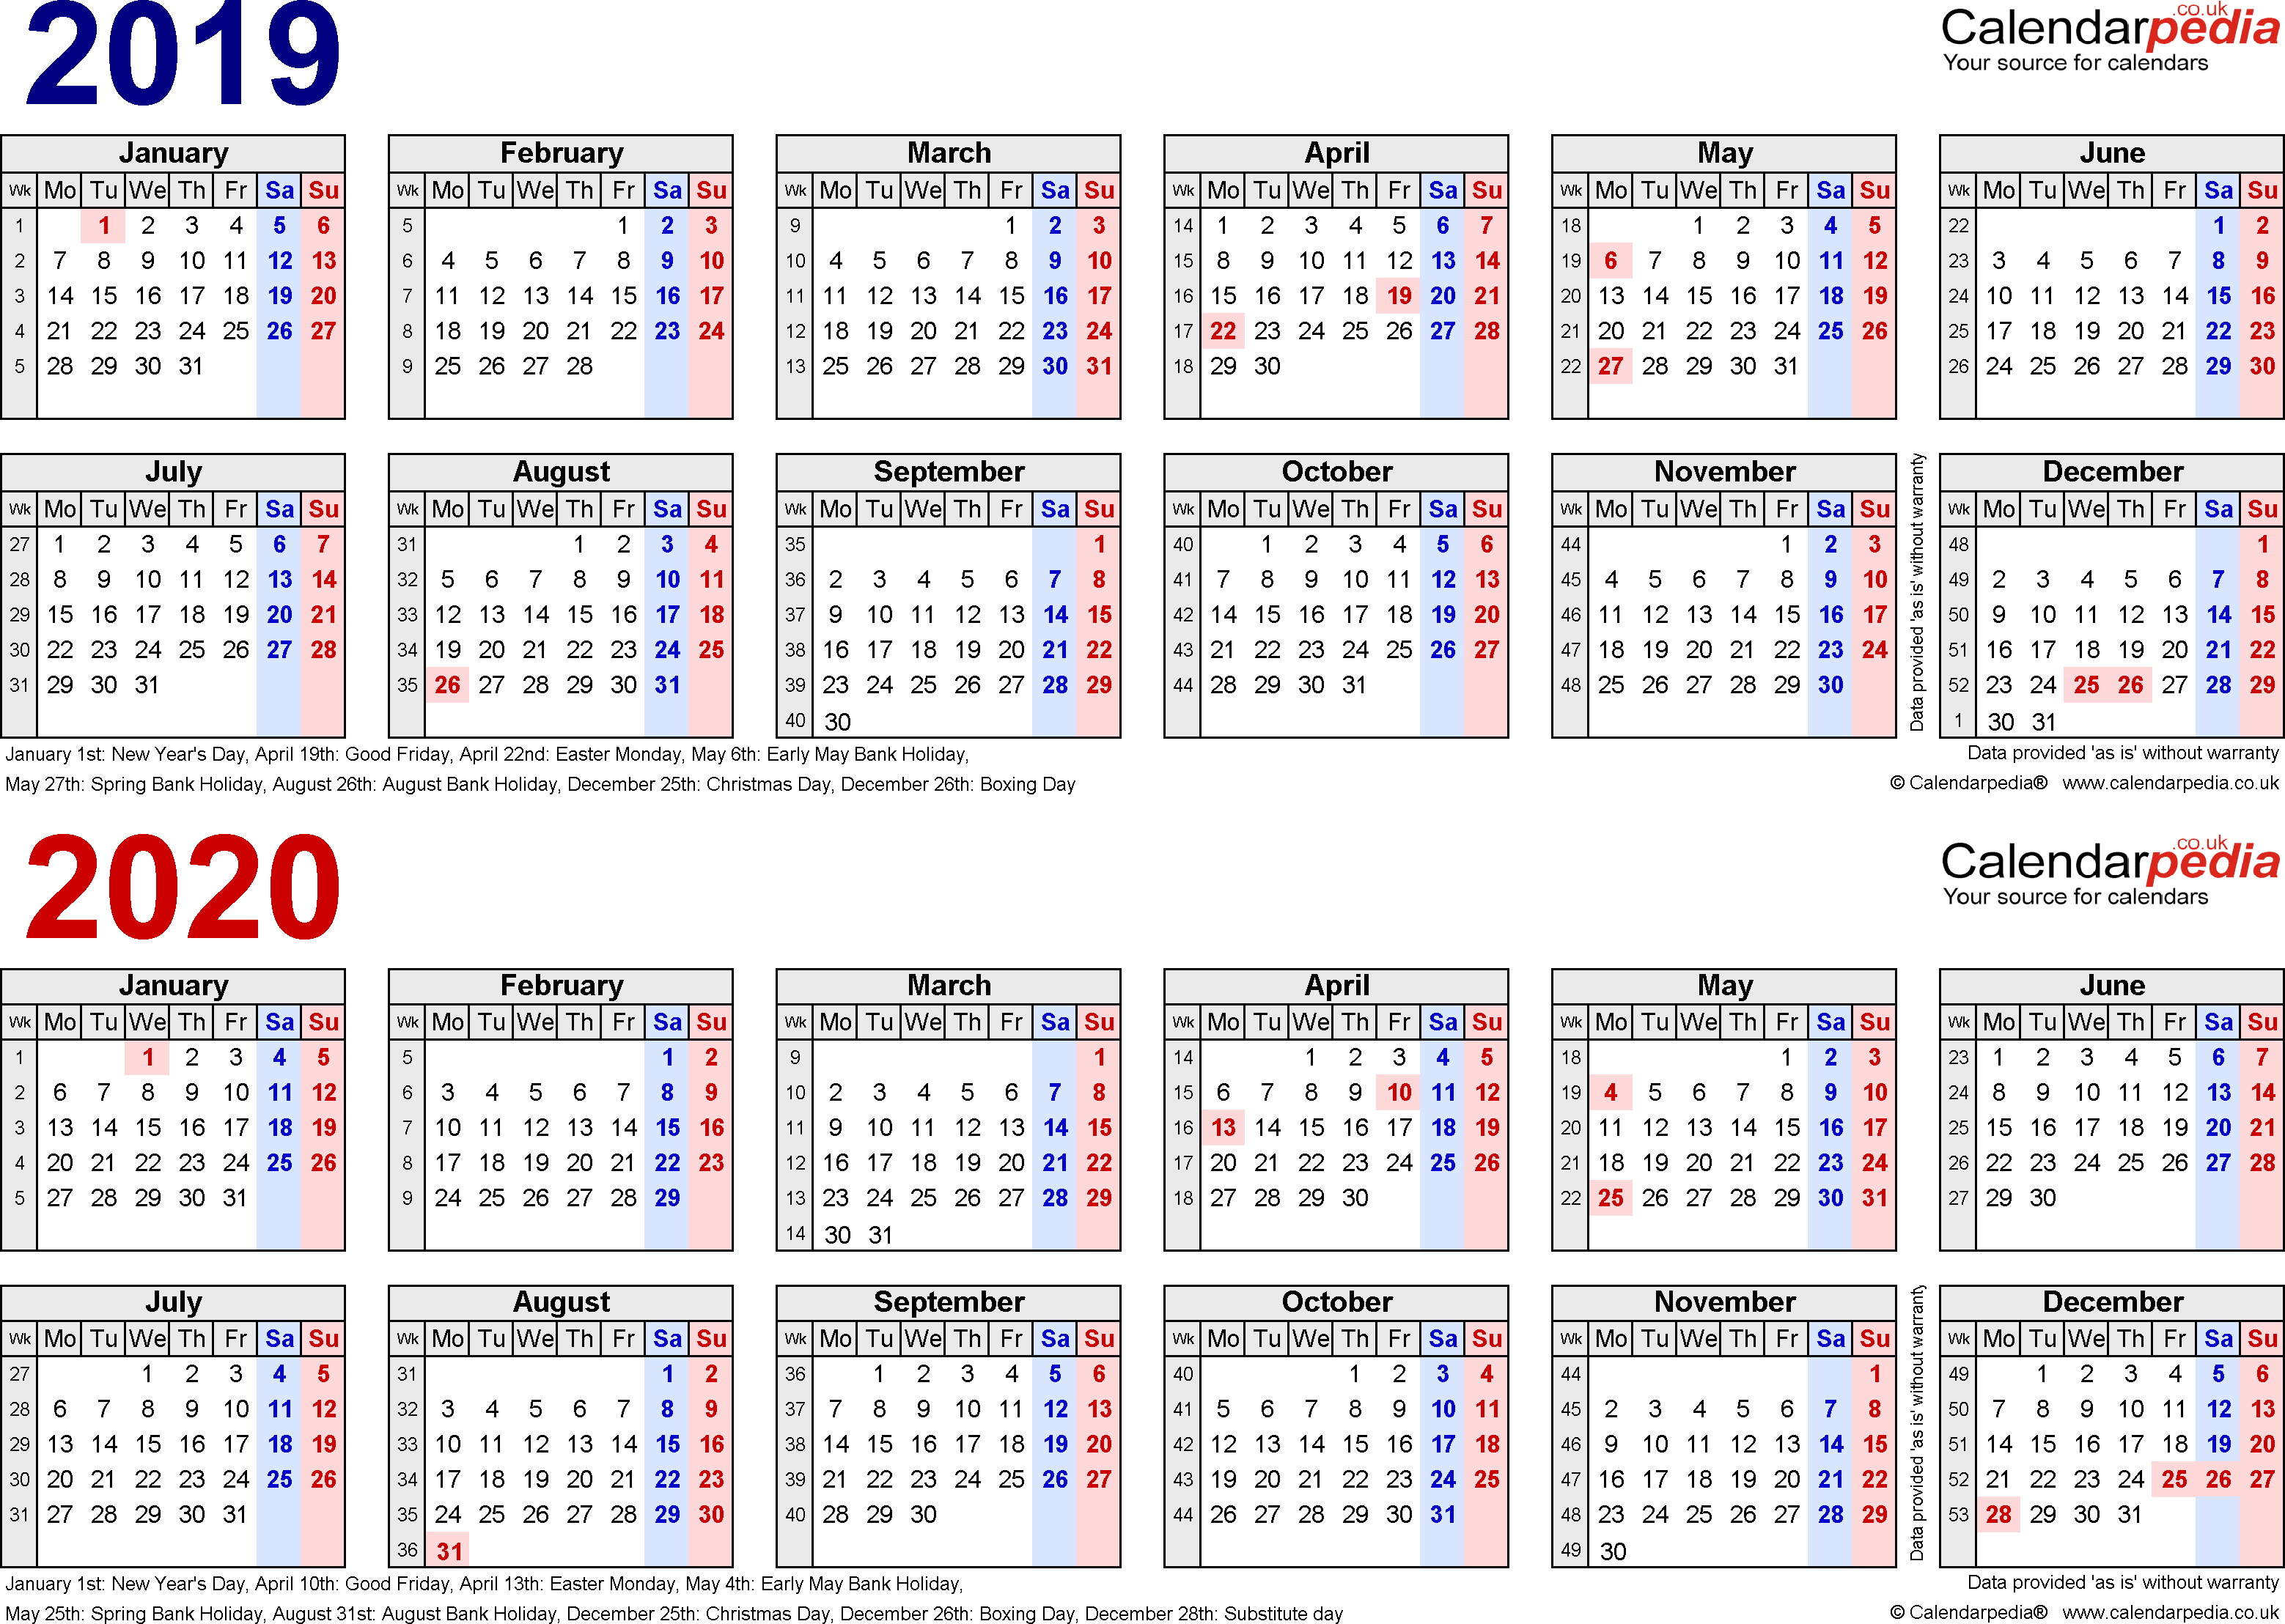 Template 1: PDF template for two year calendar 2019/2020 in blue/red (landscape orientation, 1 page, A4)